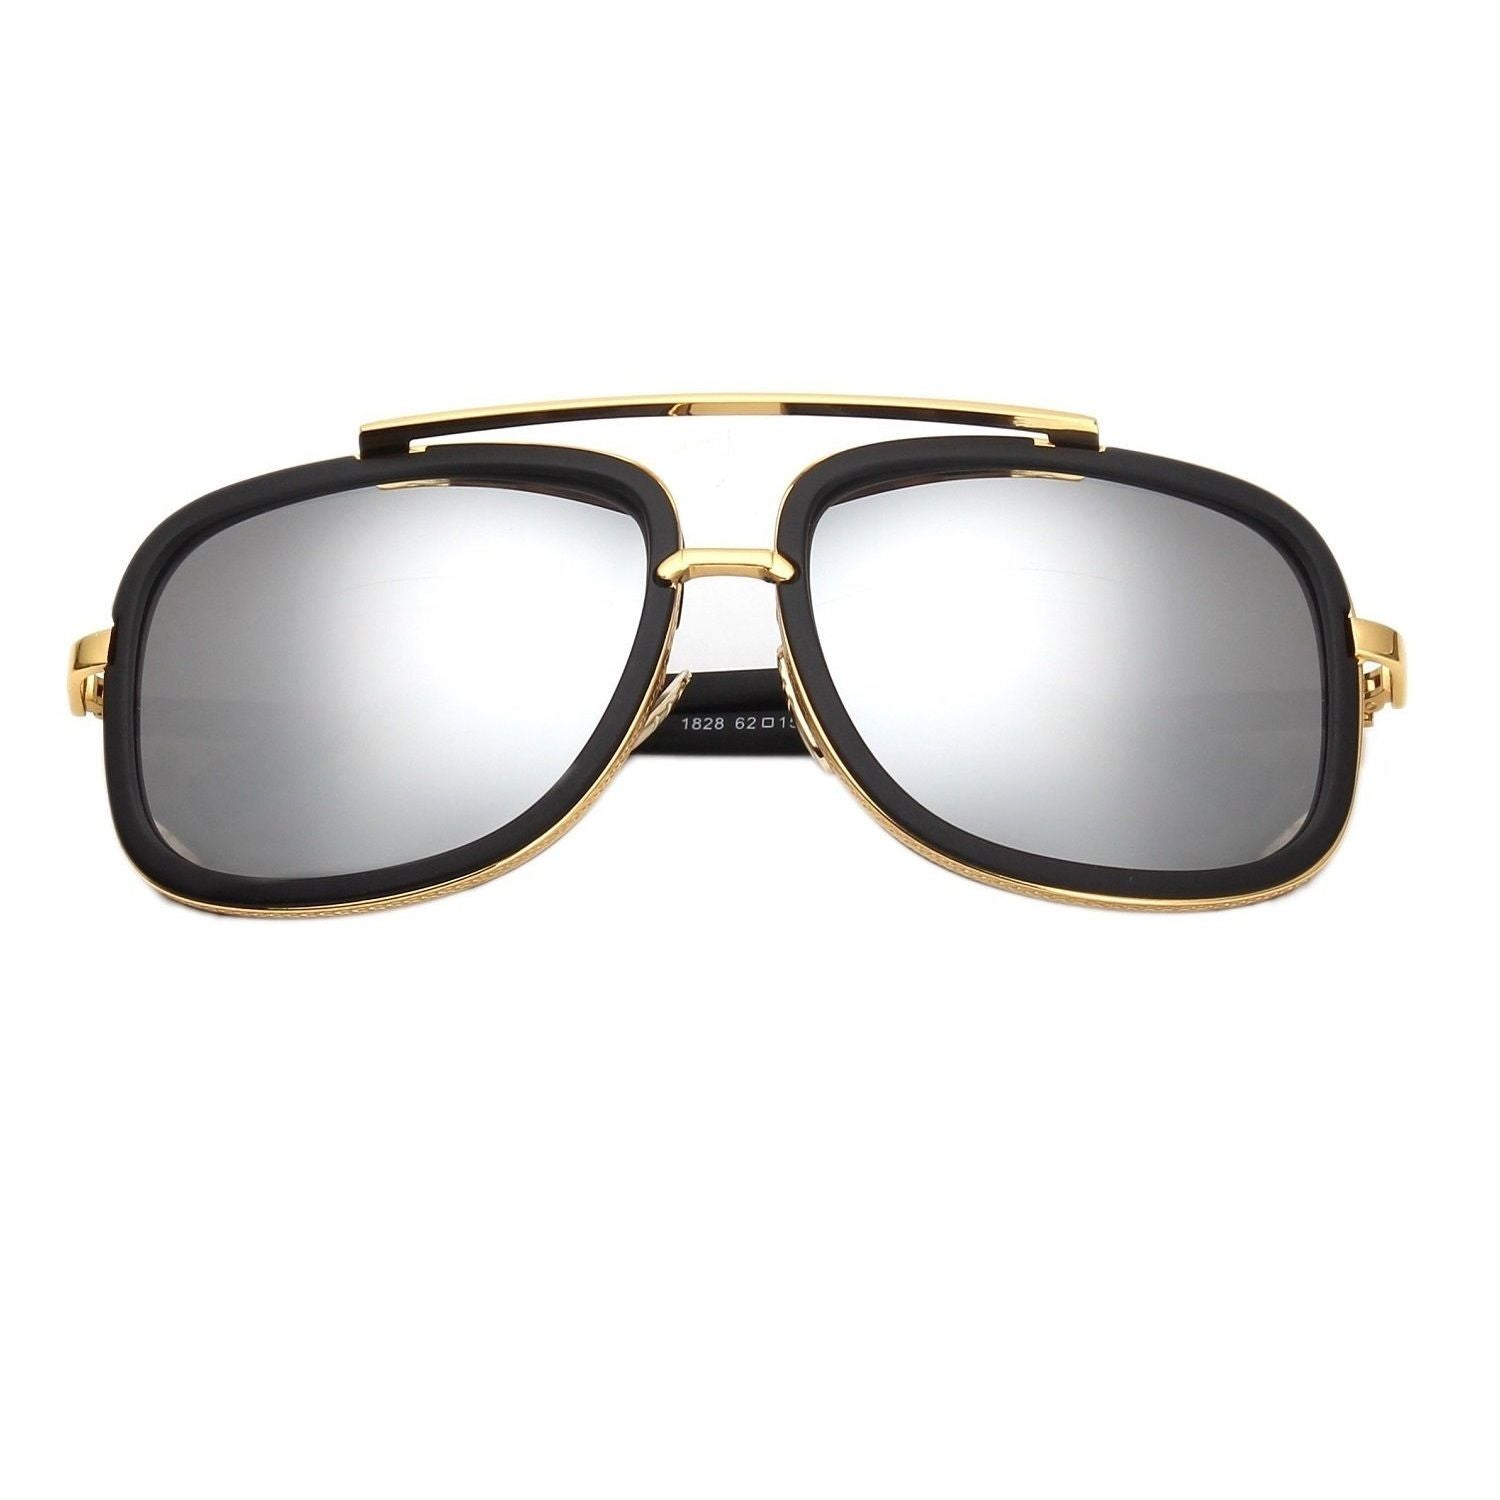 GQ Aviator - Men's Sunglasses